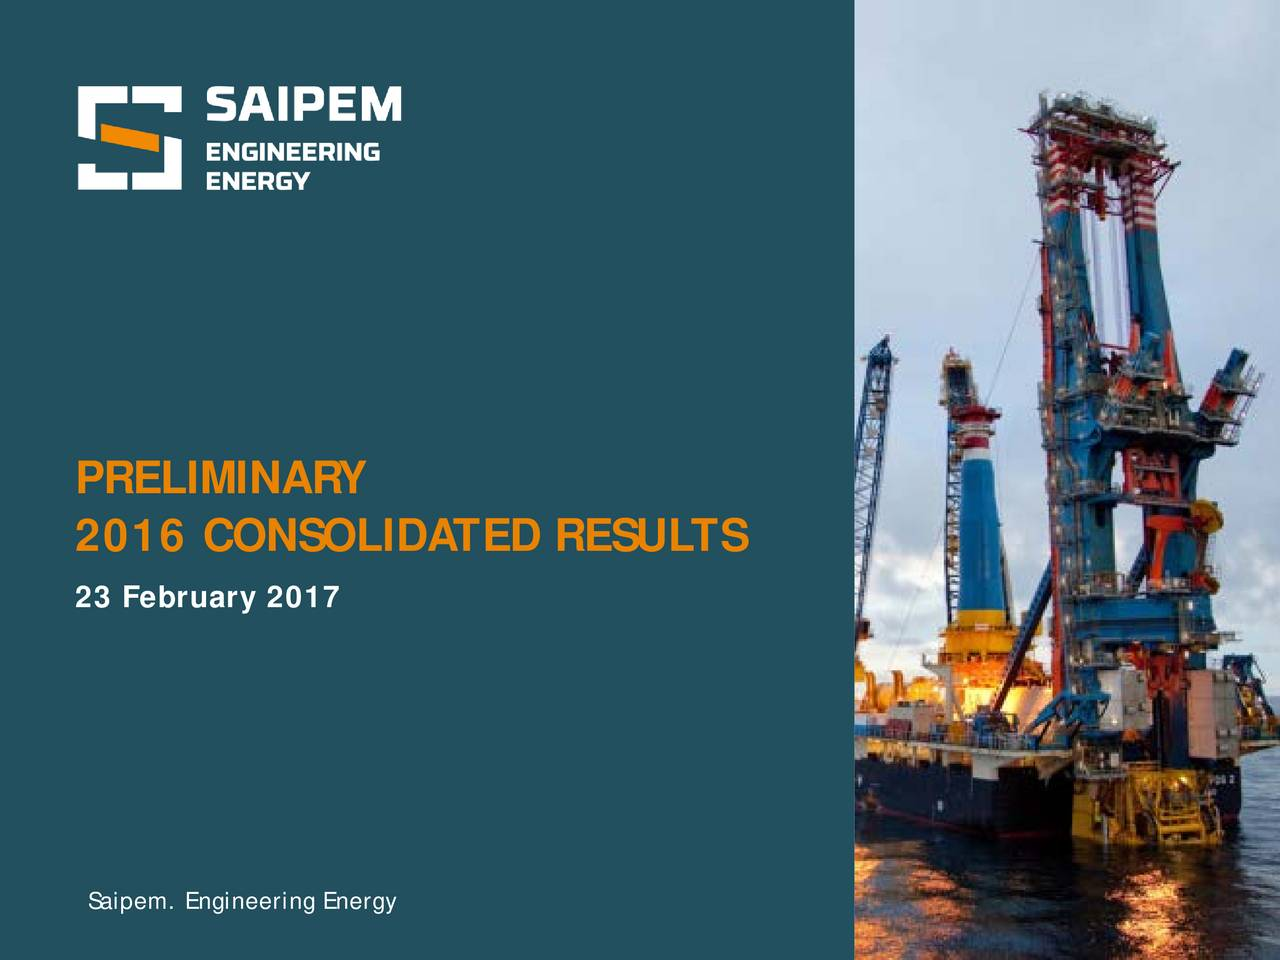 2016 CONSOLIDATED RESULTS 23 February 2017 gioved 23 febbraio 2017 Saipem. Engineering Energy